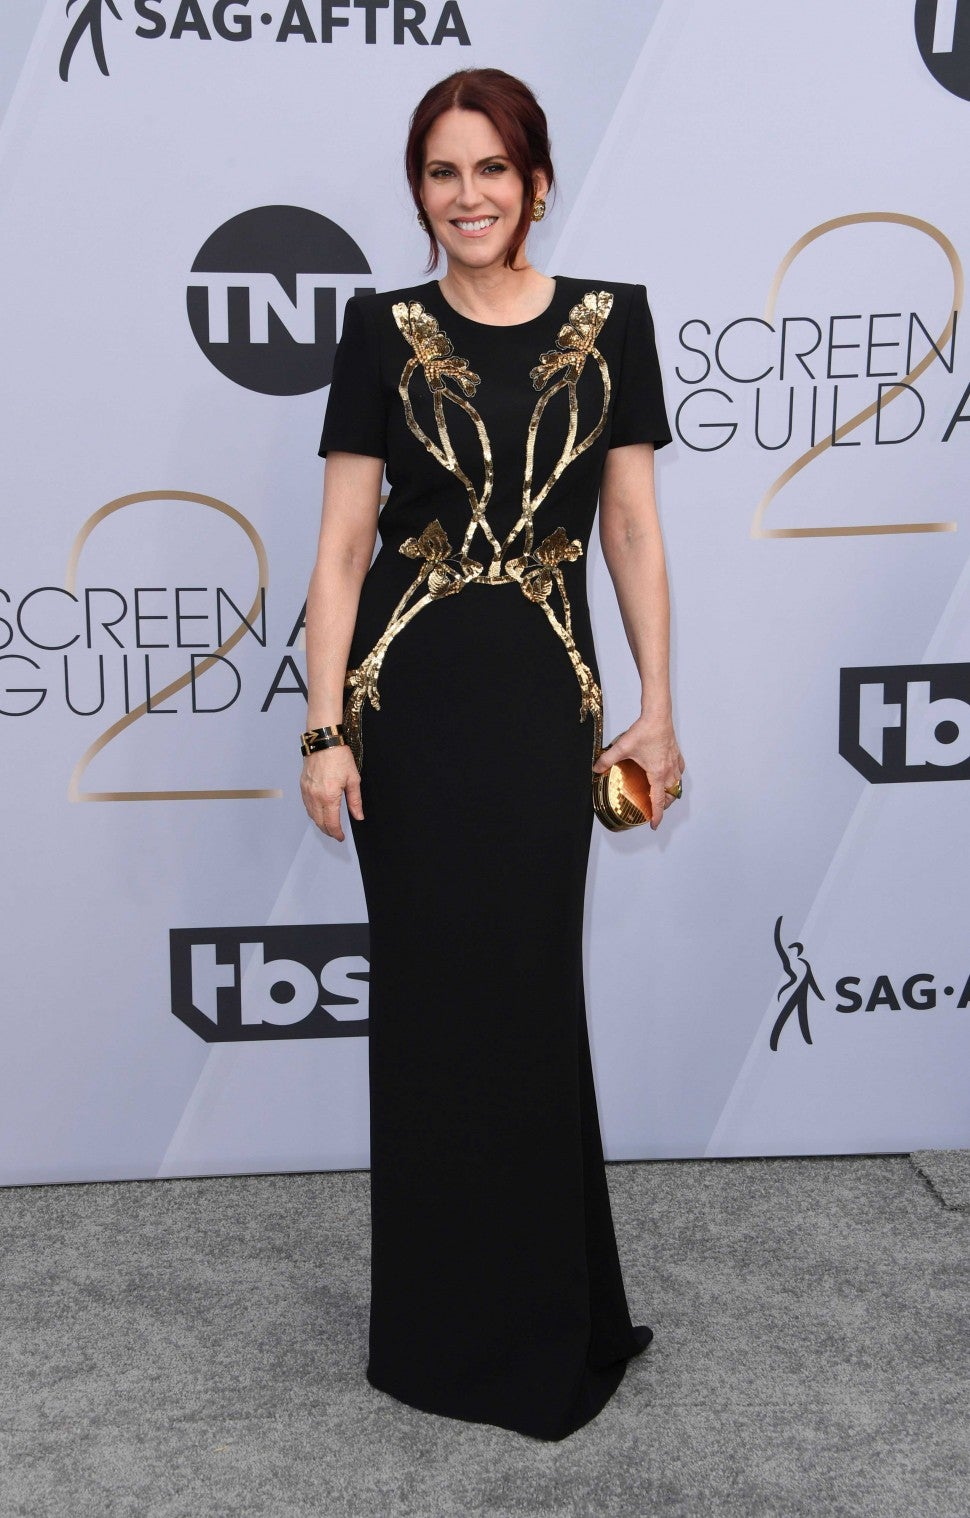 Megan Mullally at the 25th Annual Screen Actors Guild Awards